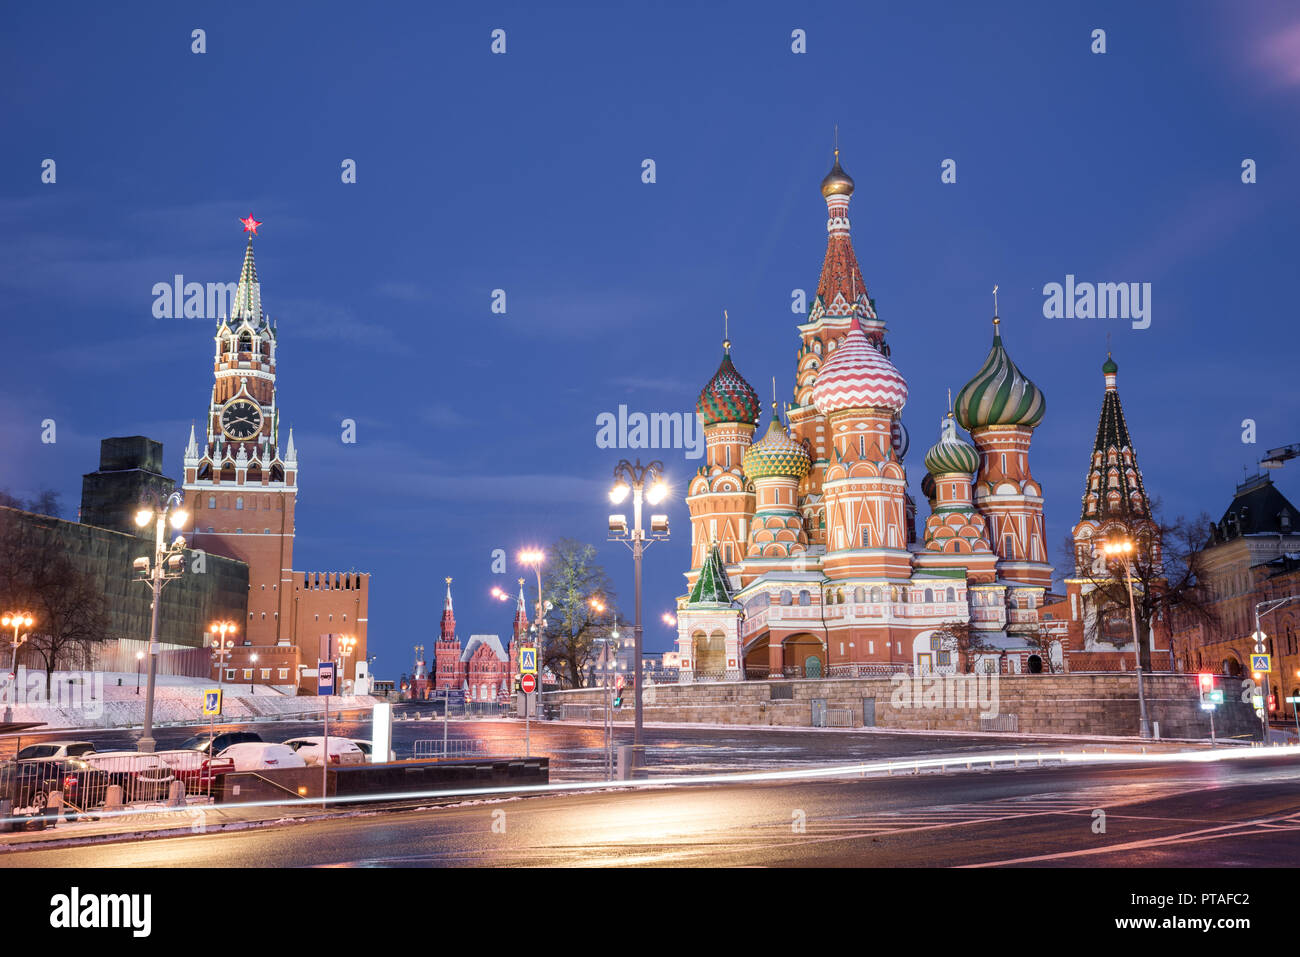 Cathedral of Vasily the Blessed and Spasskaya Tower. Winter Moscow before Christmas and New Year. Kremlin, Moscow, Russia. January 9, 2018 - Stock Image